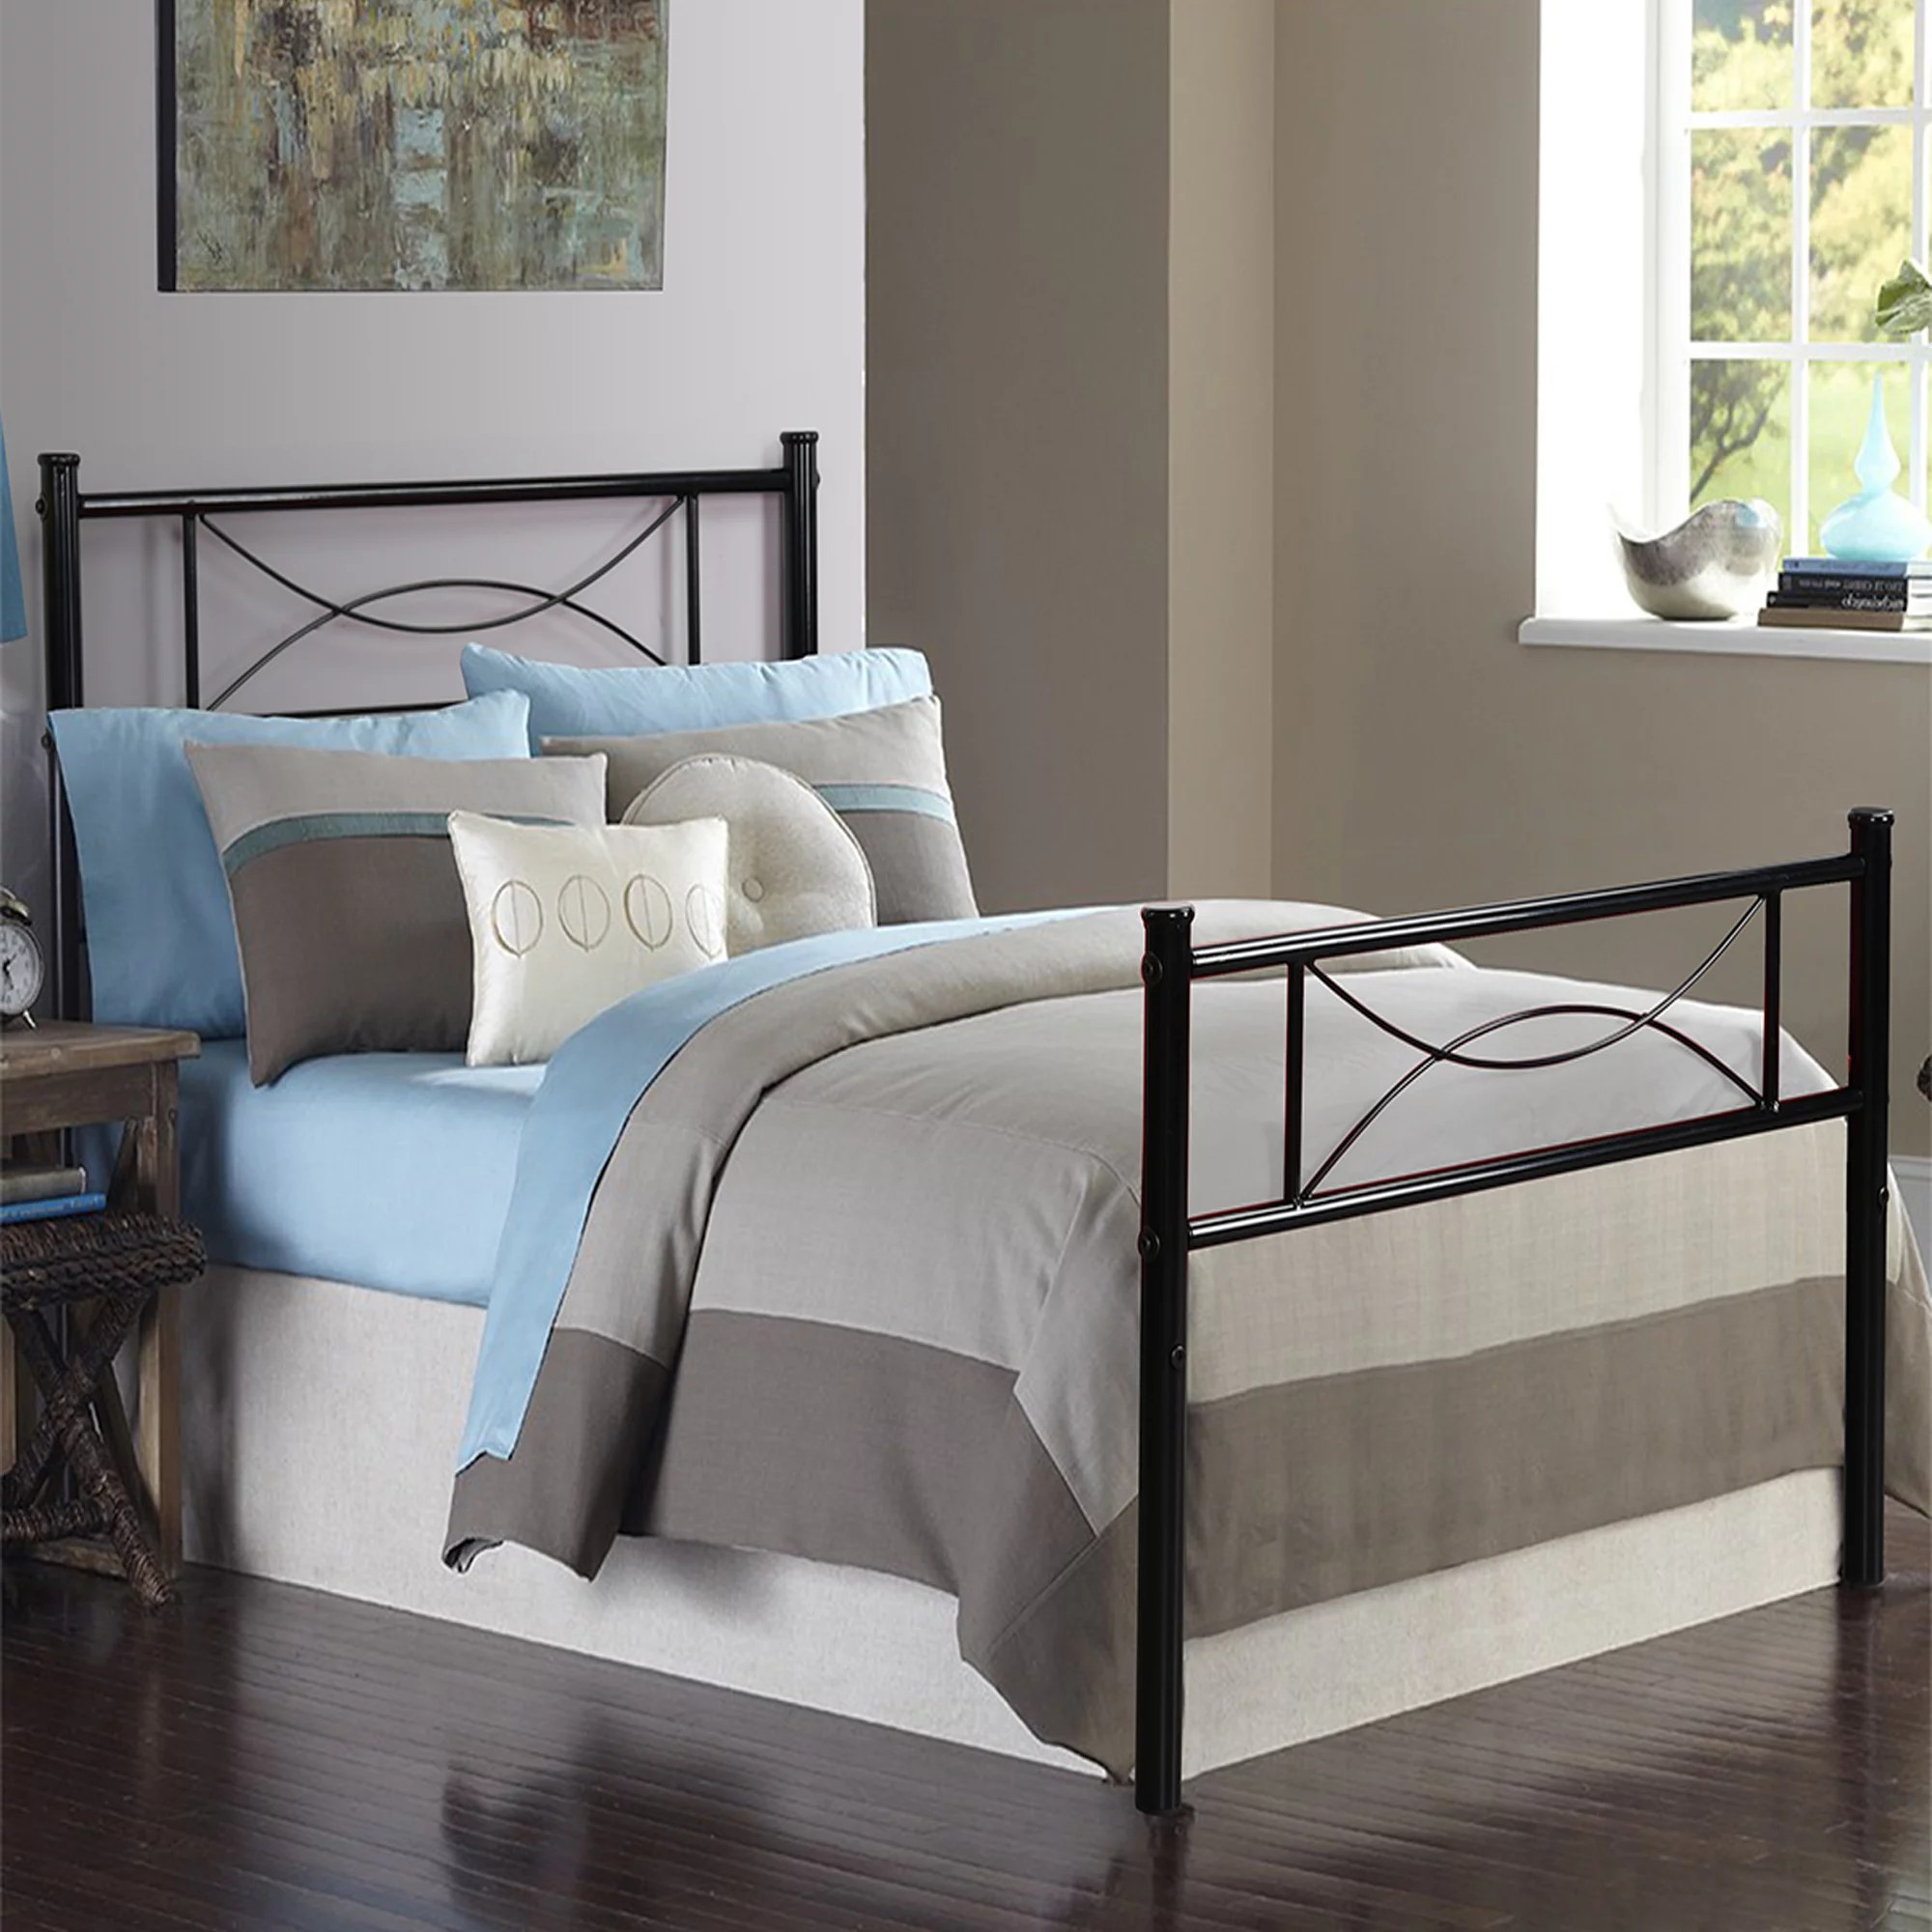 Metal Bed Headboards Cheerwing 12 7 High Metal Platform Bed Frame With Two Bowknot Headboards Easy Assembly Twin Full Size